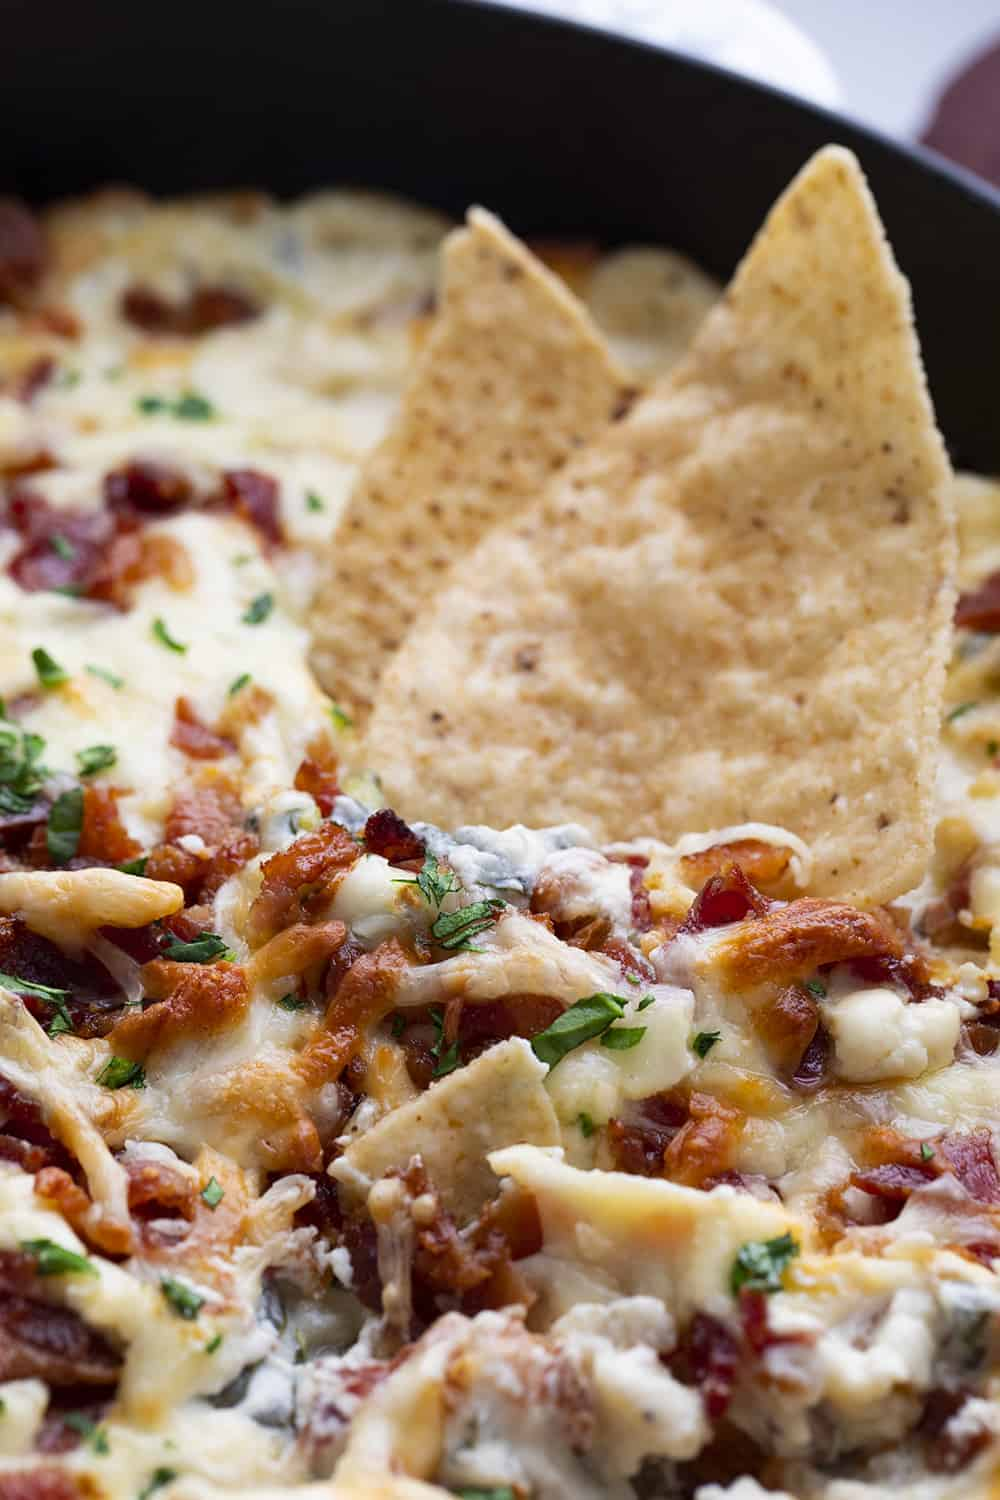 Chips in Bacon Spinach Dip